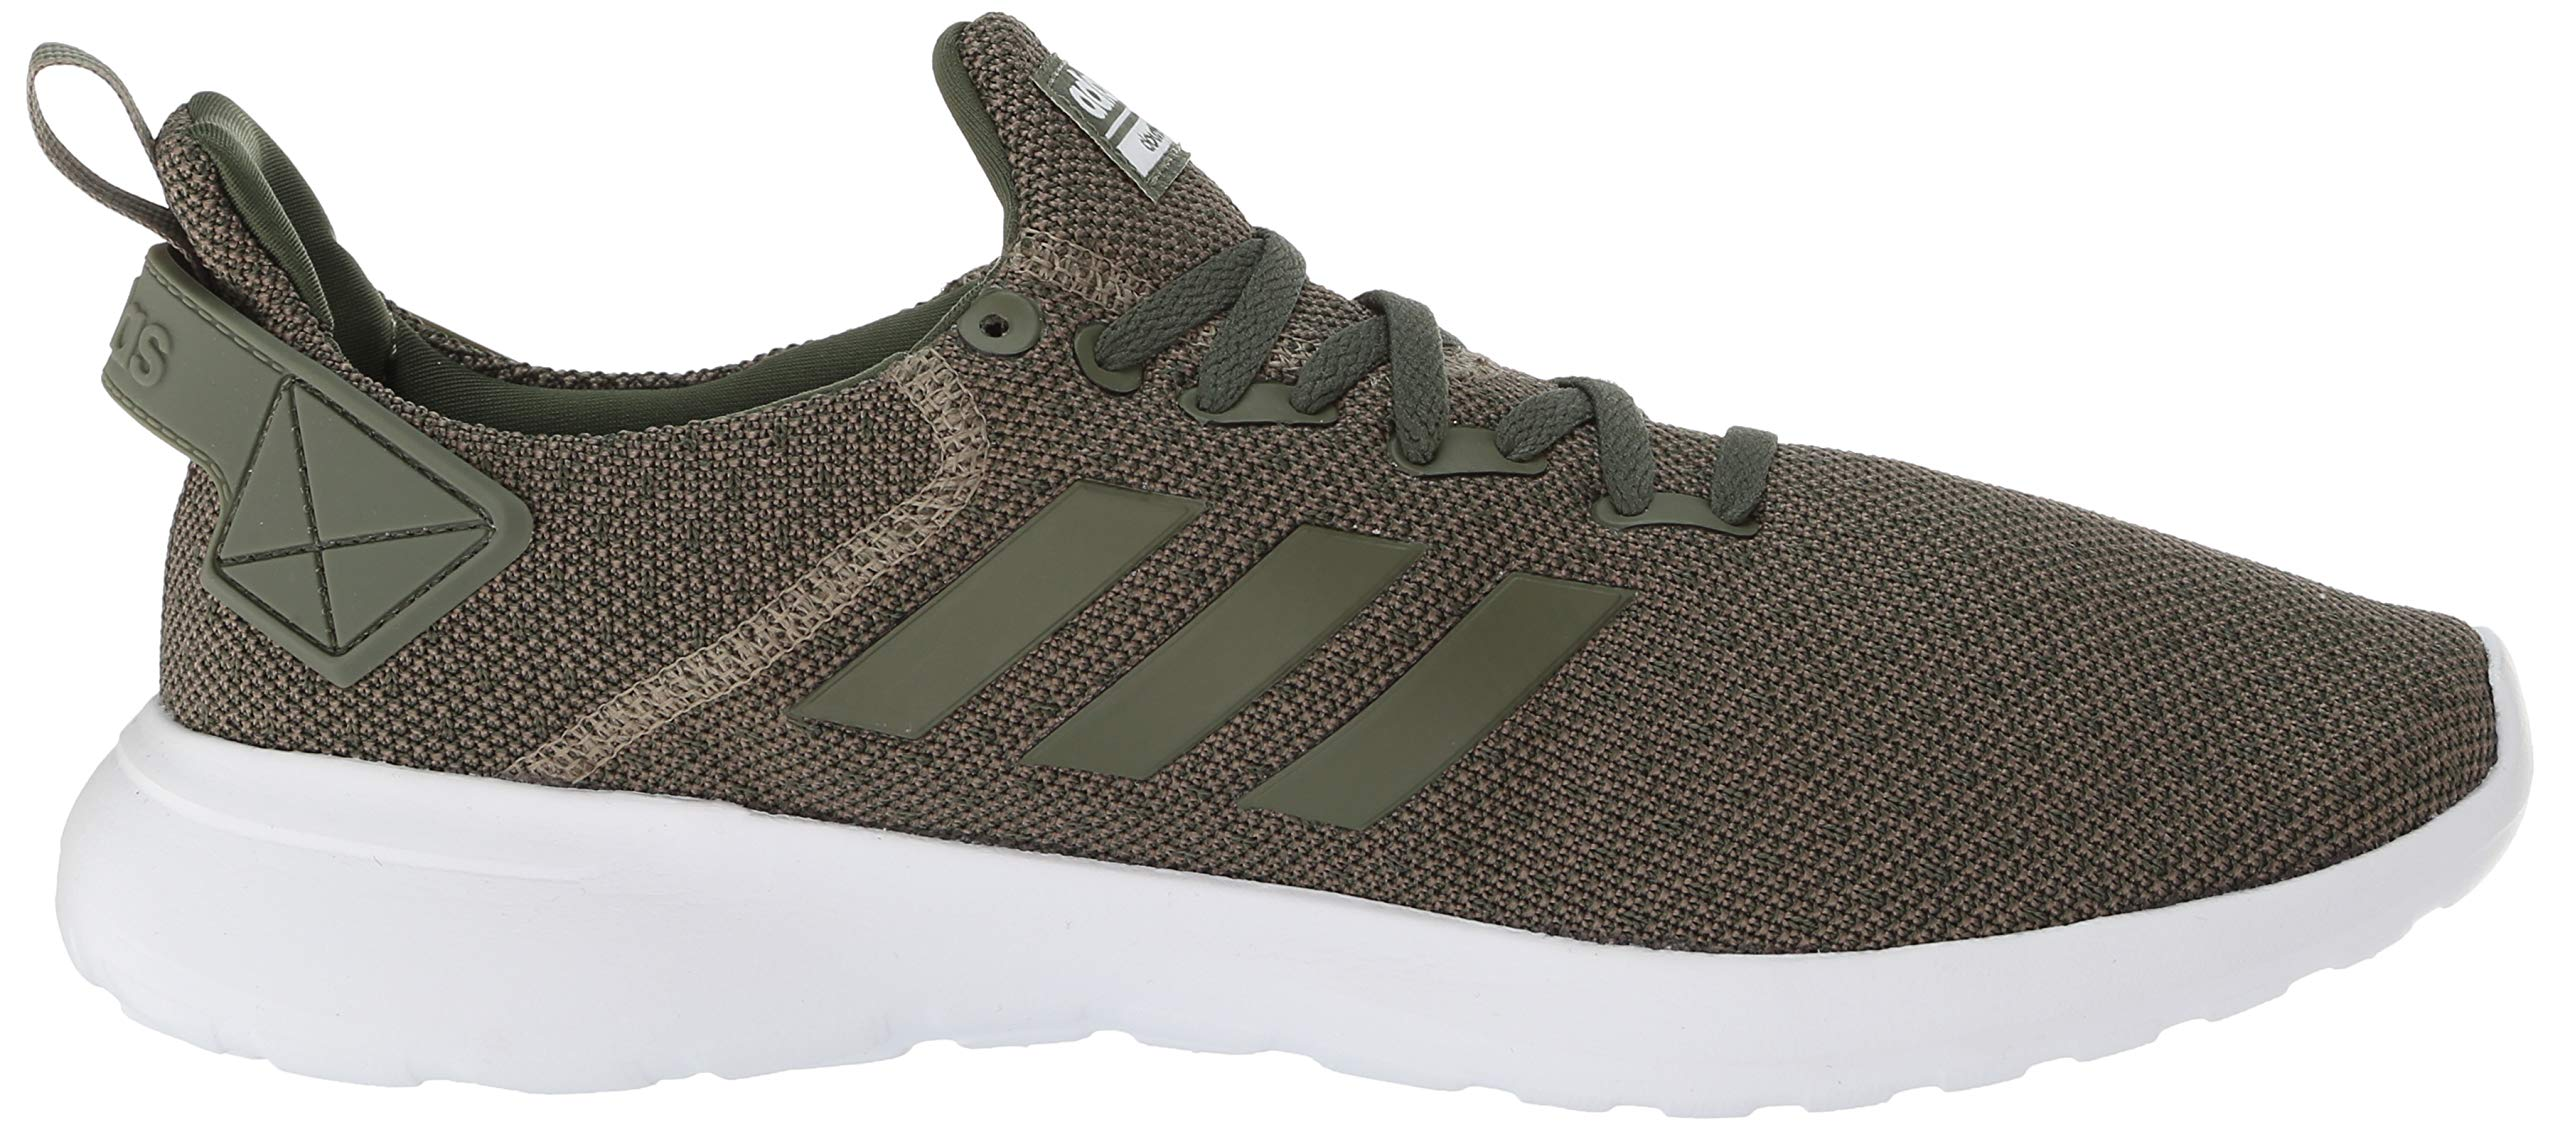 adidas Men's Lite Racer BYD Running Shoe, Trace Cargo/Base Green/White, 10 M US by adidas (Image #7)